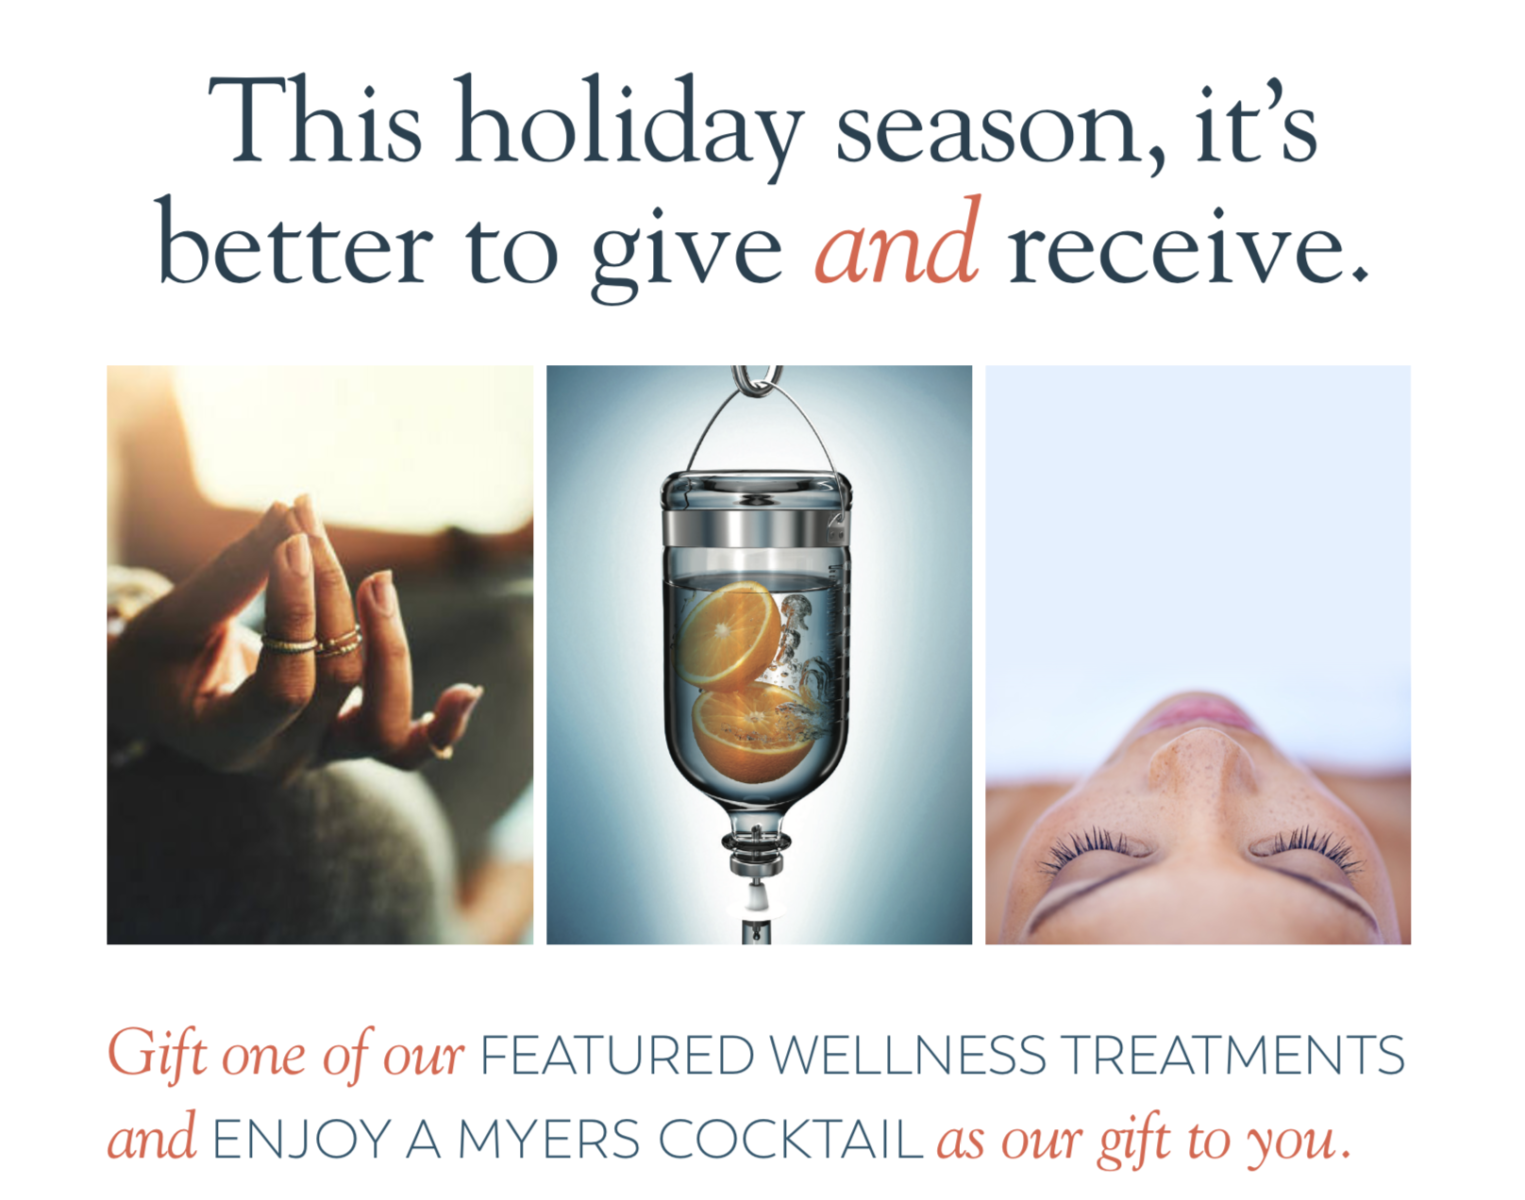 Looking to give the gift of wellness? Our holiday wellness special is here!